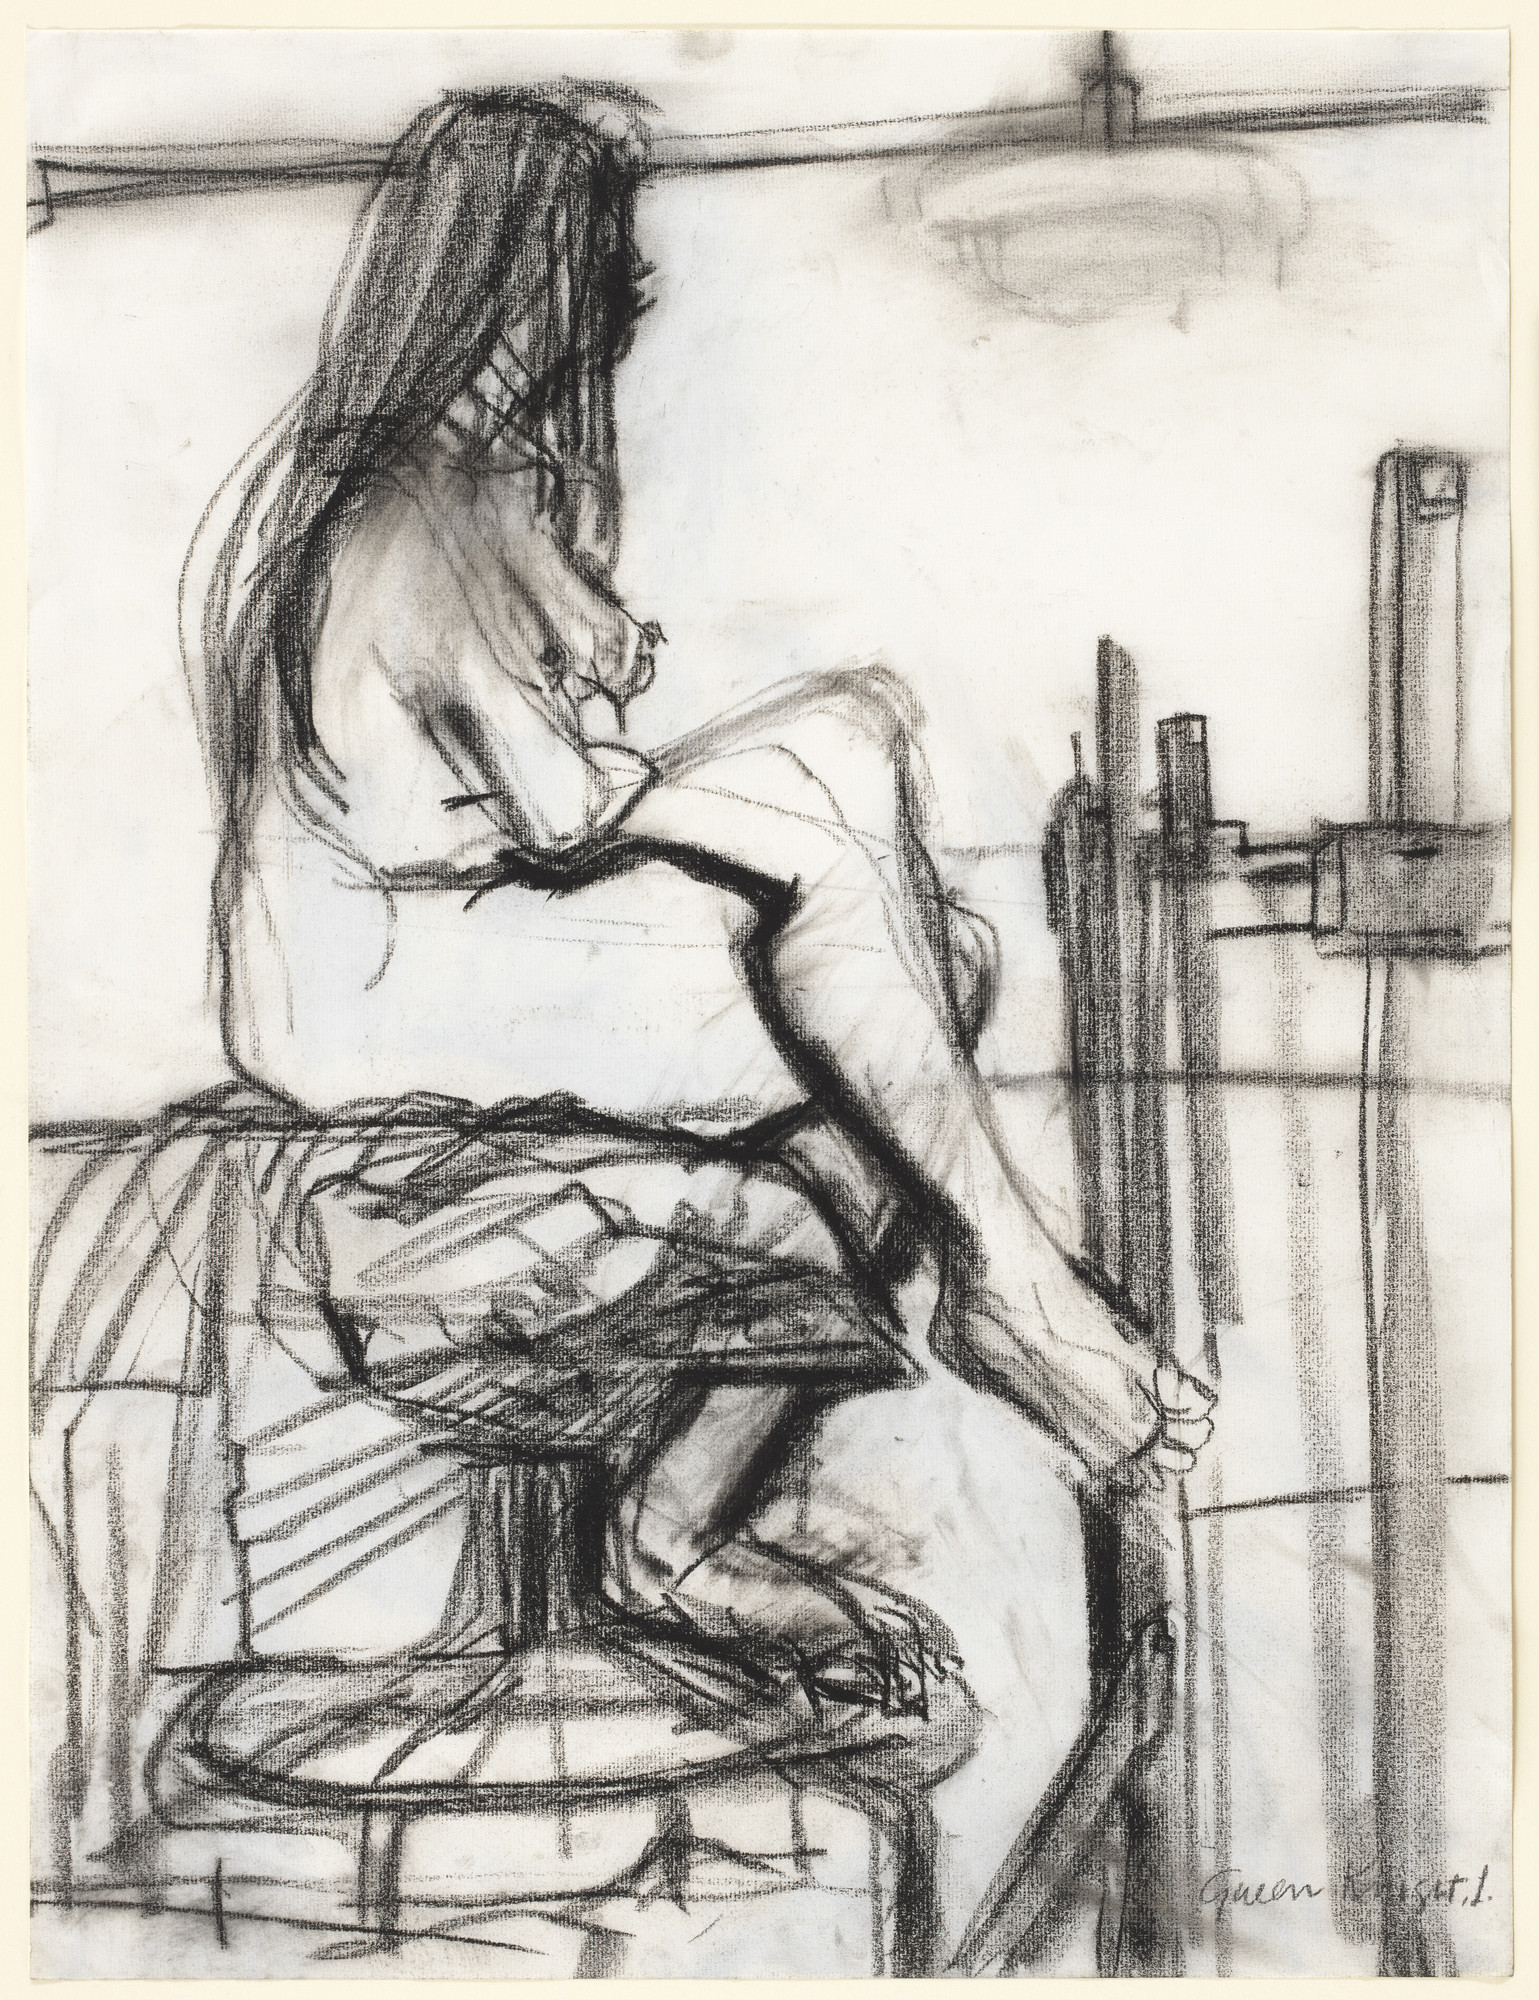 Gwen Knight. Figure Study No. 3. (1975)